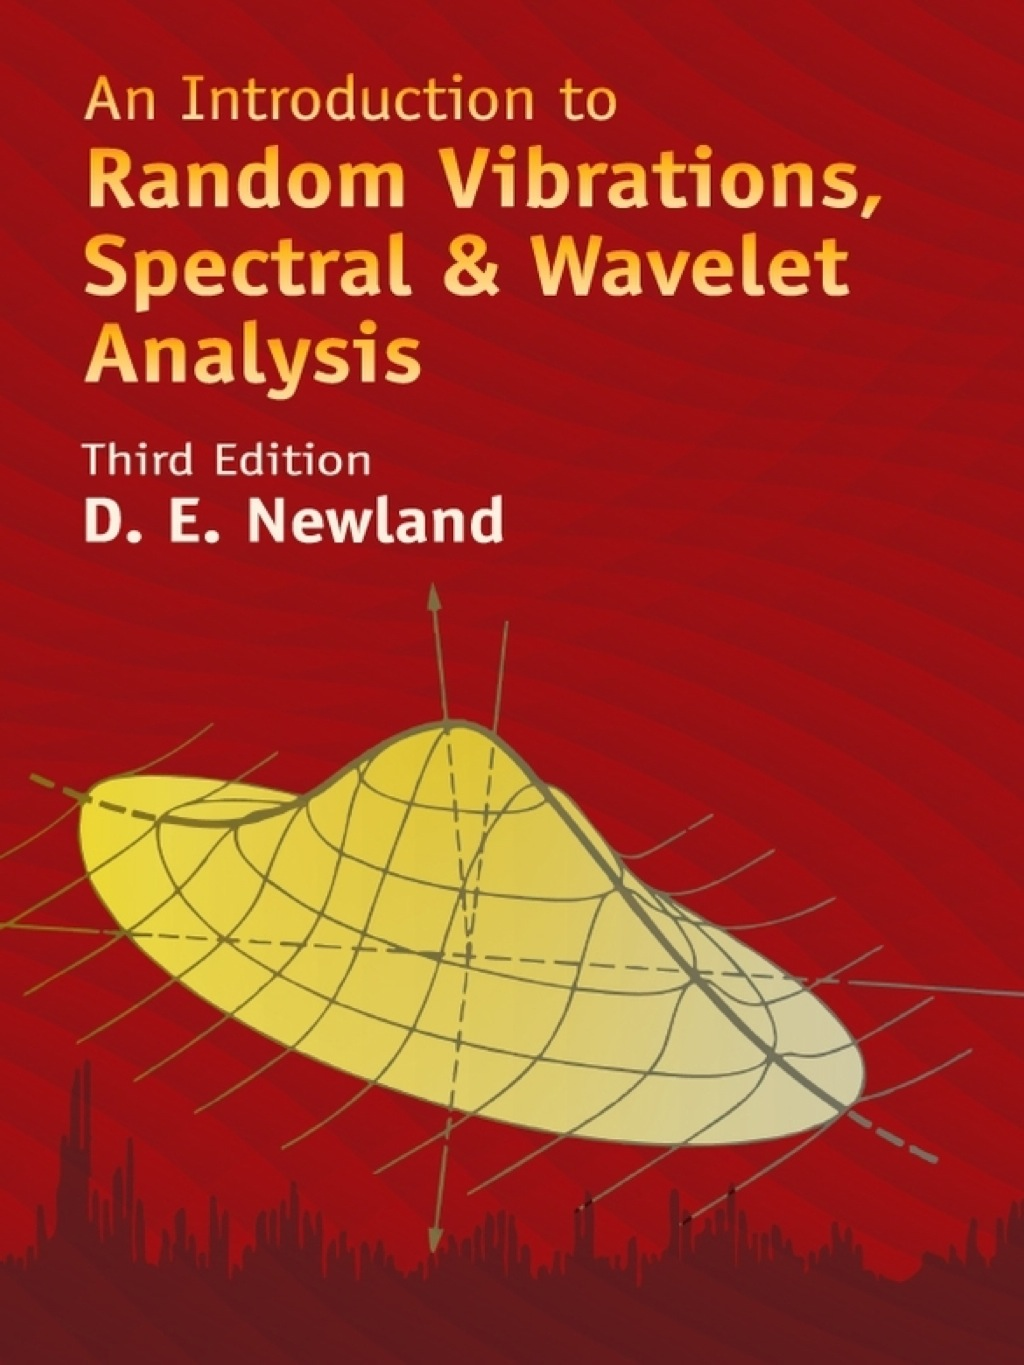 An Introduction to Random Vibrations, Spectral (ebook) eBooks